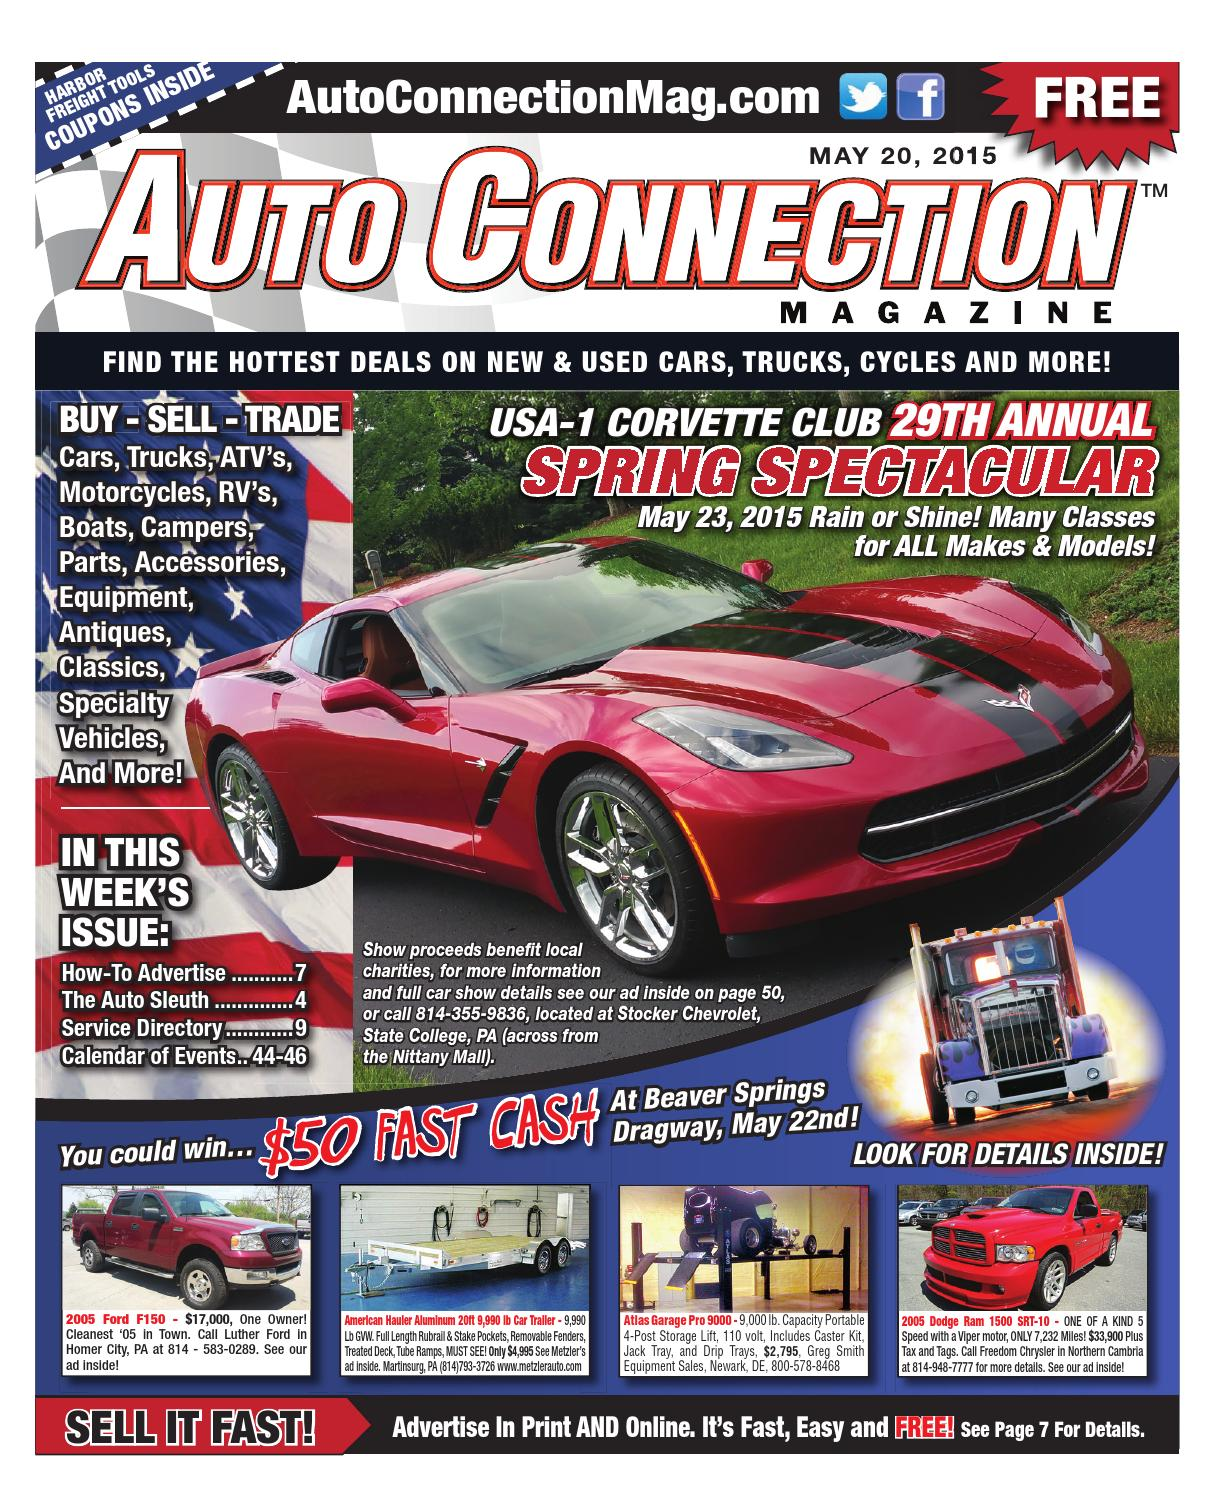 05 20 15 Auto Connection Magazine By Auto Connection Magazine Issuu